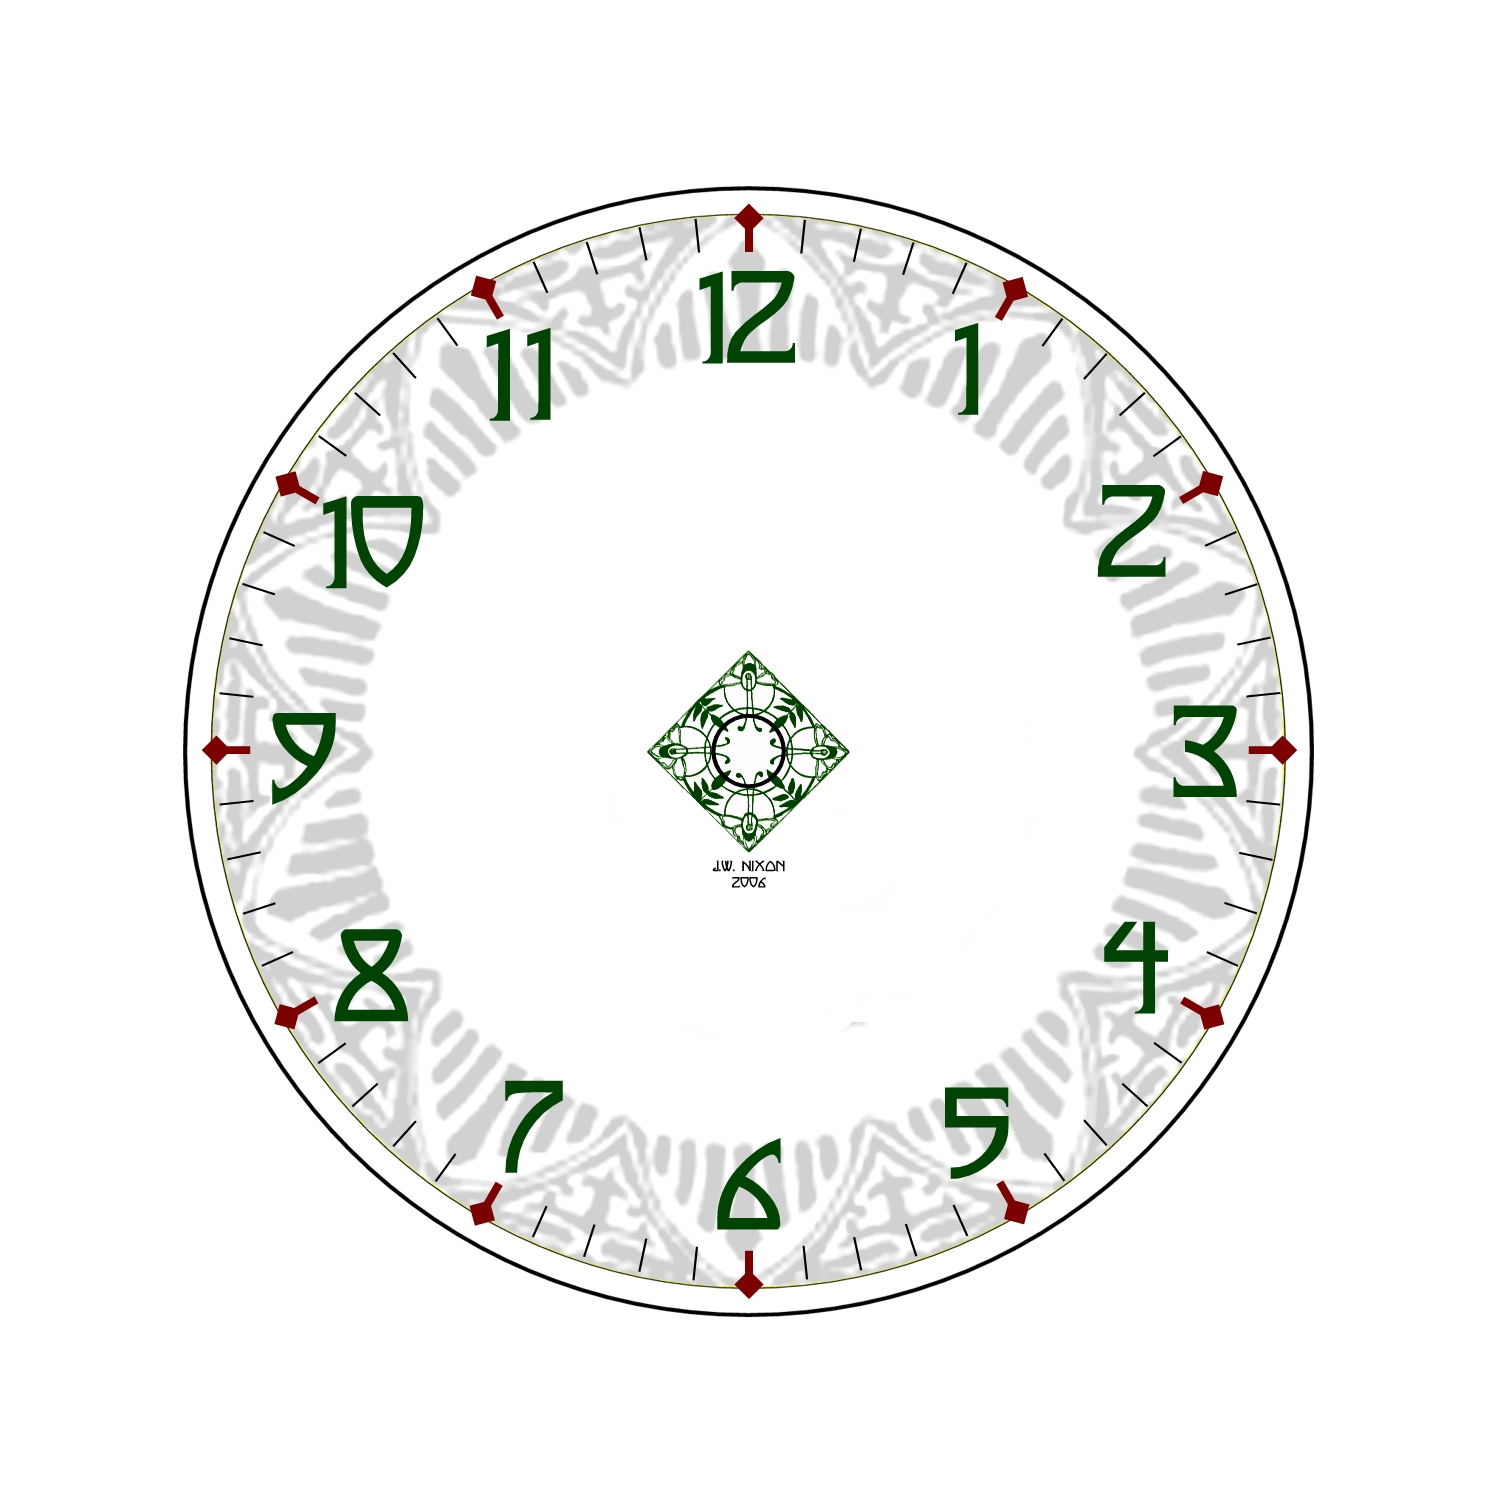 Woodworking Plans and Project: Here Woodworking plans clocks